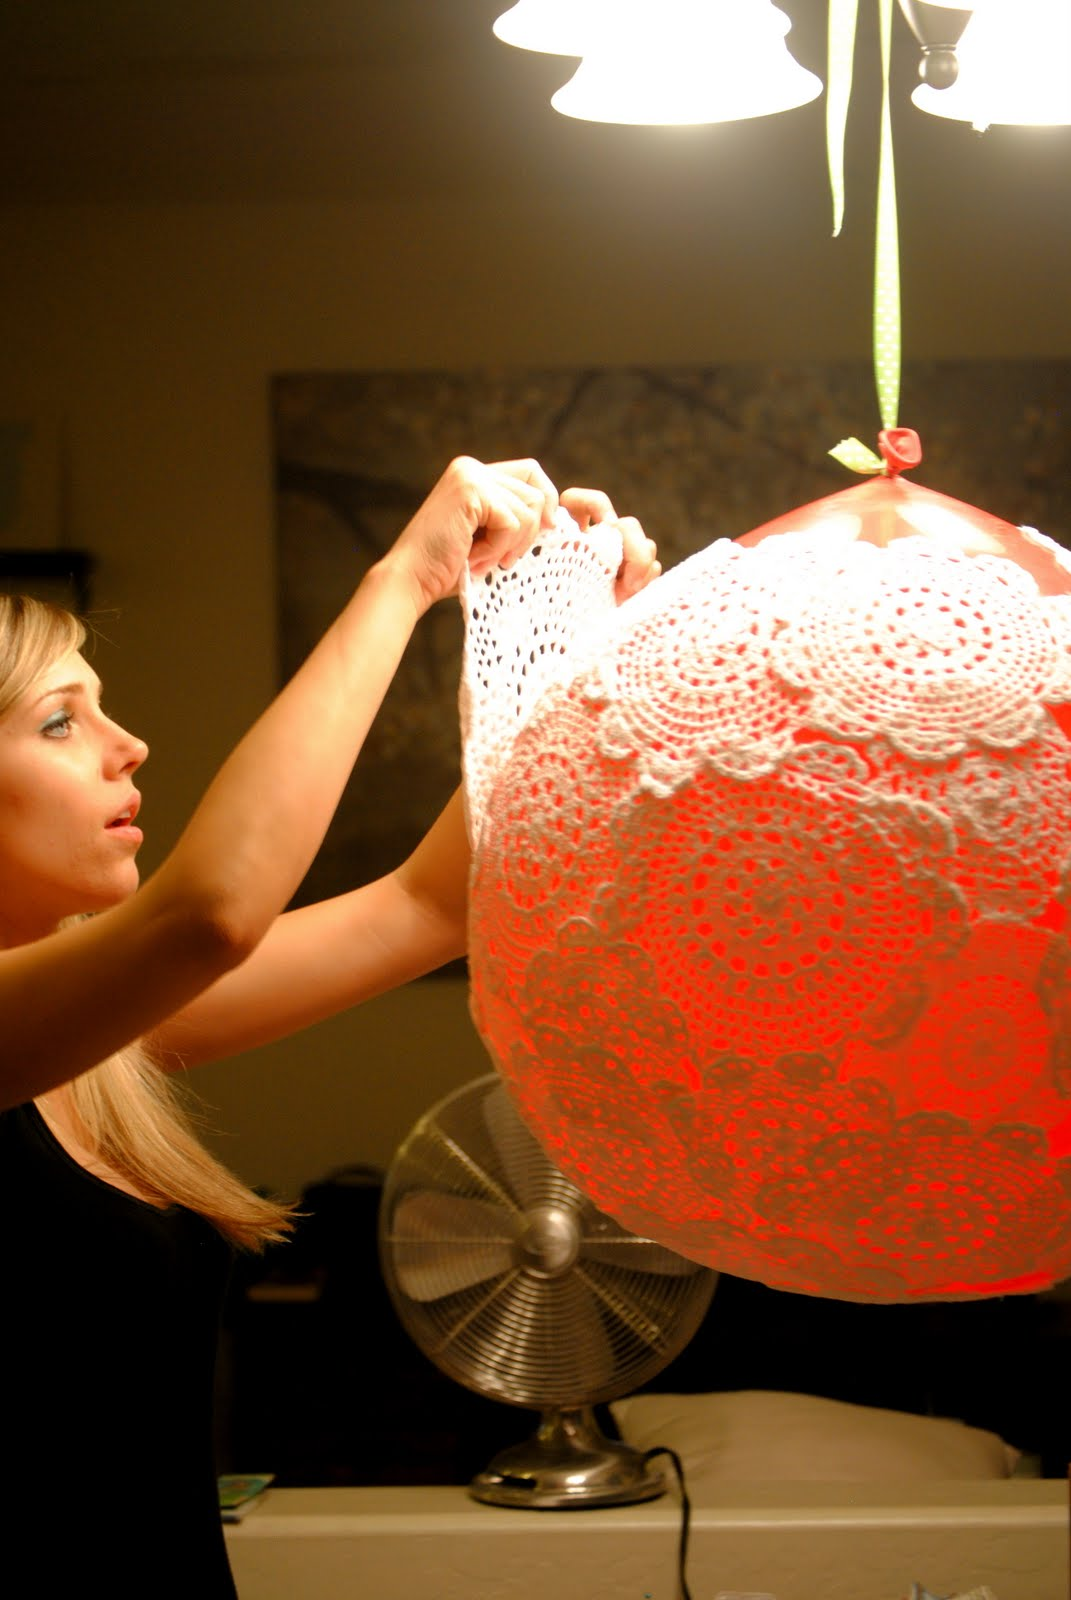 The johnstons diy doily lamp diy doily lamp arubaitofo Image collections